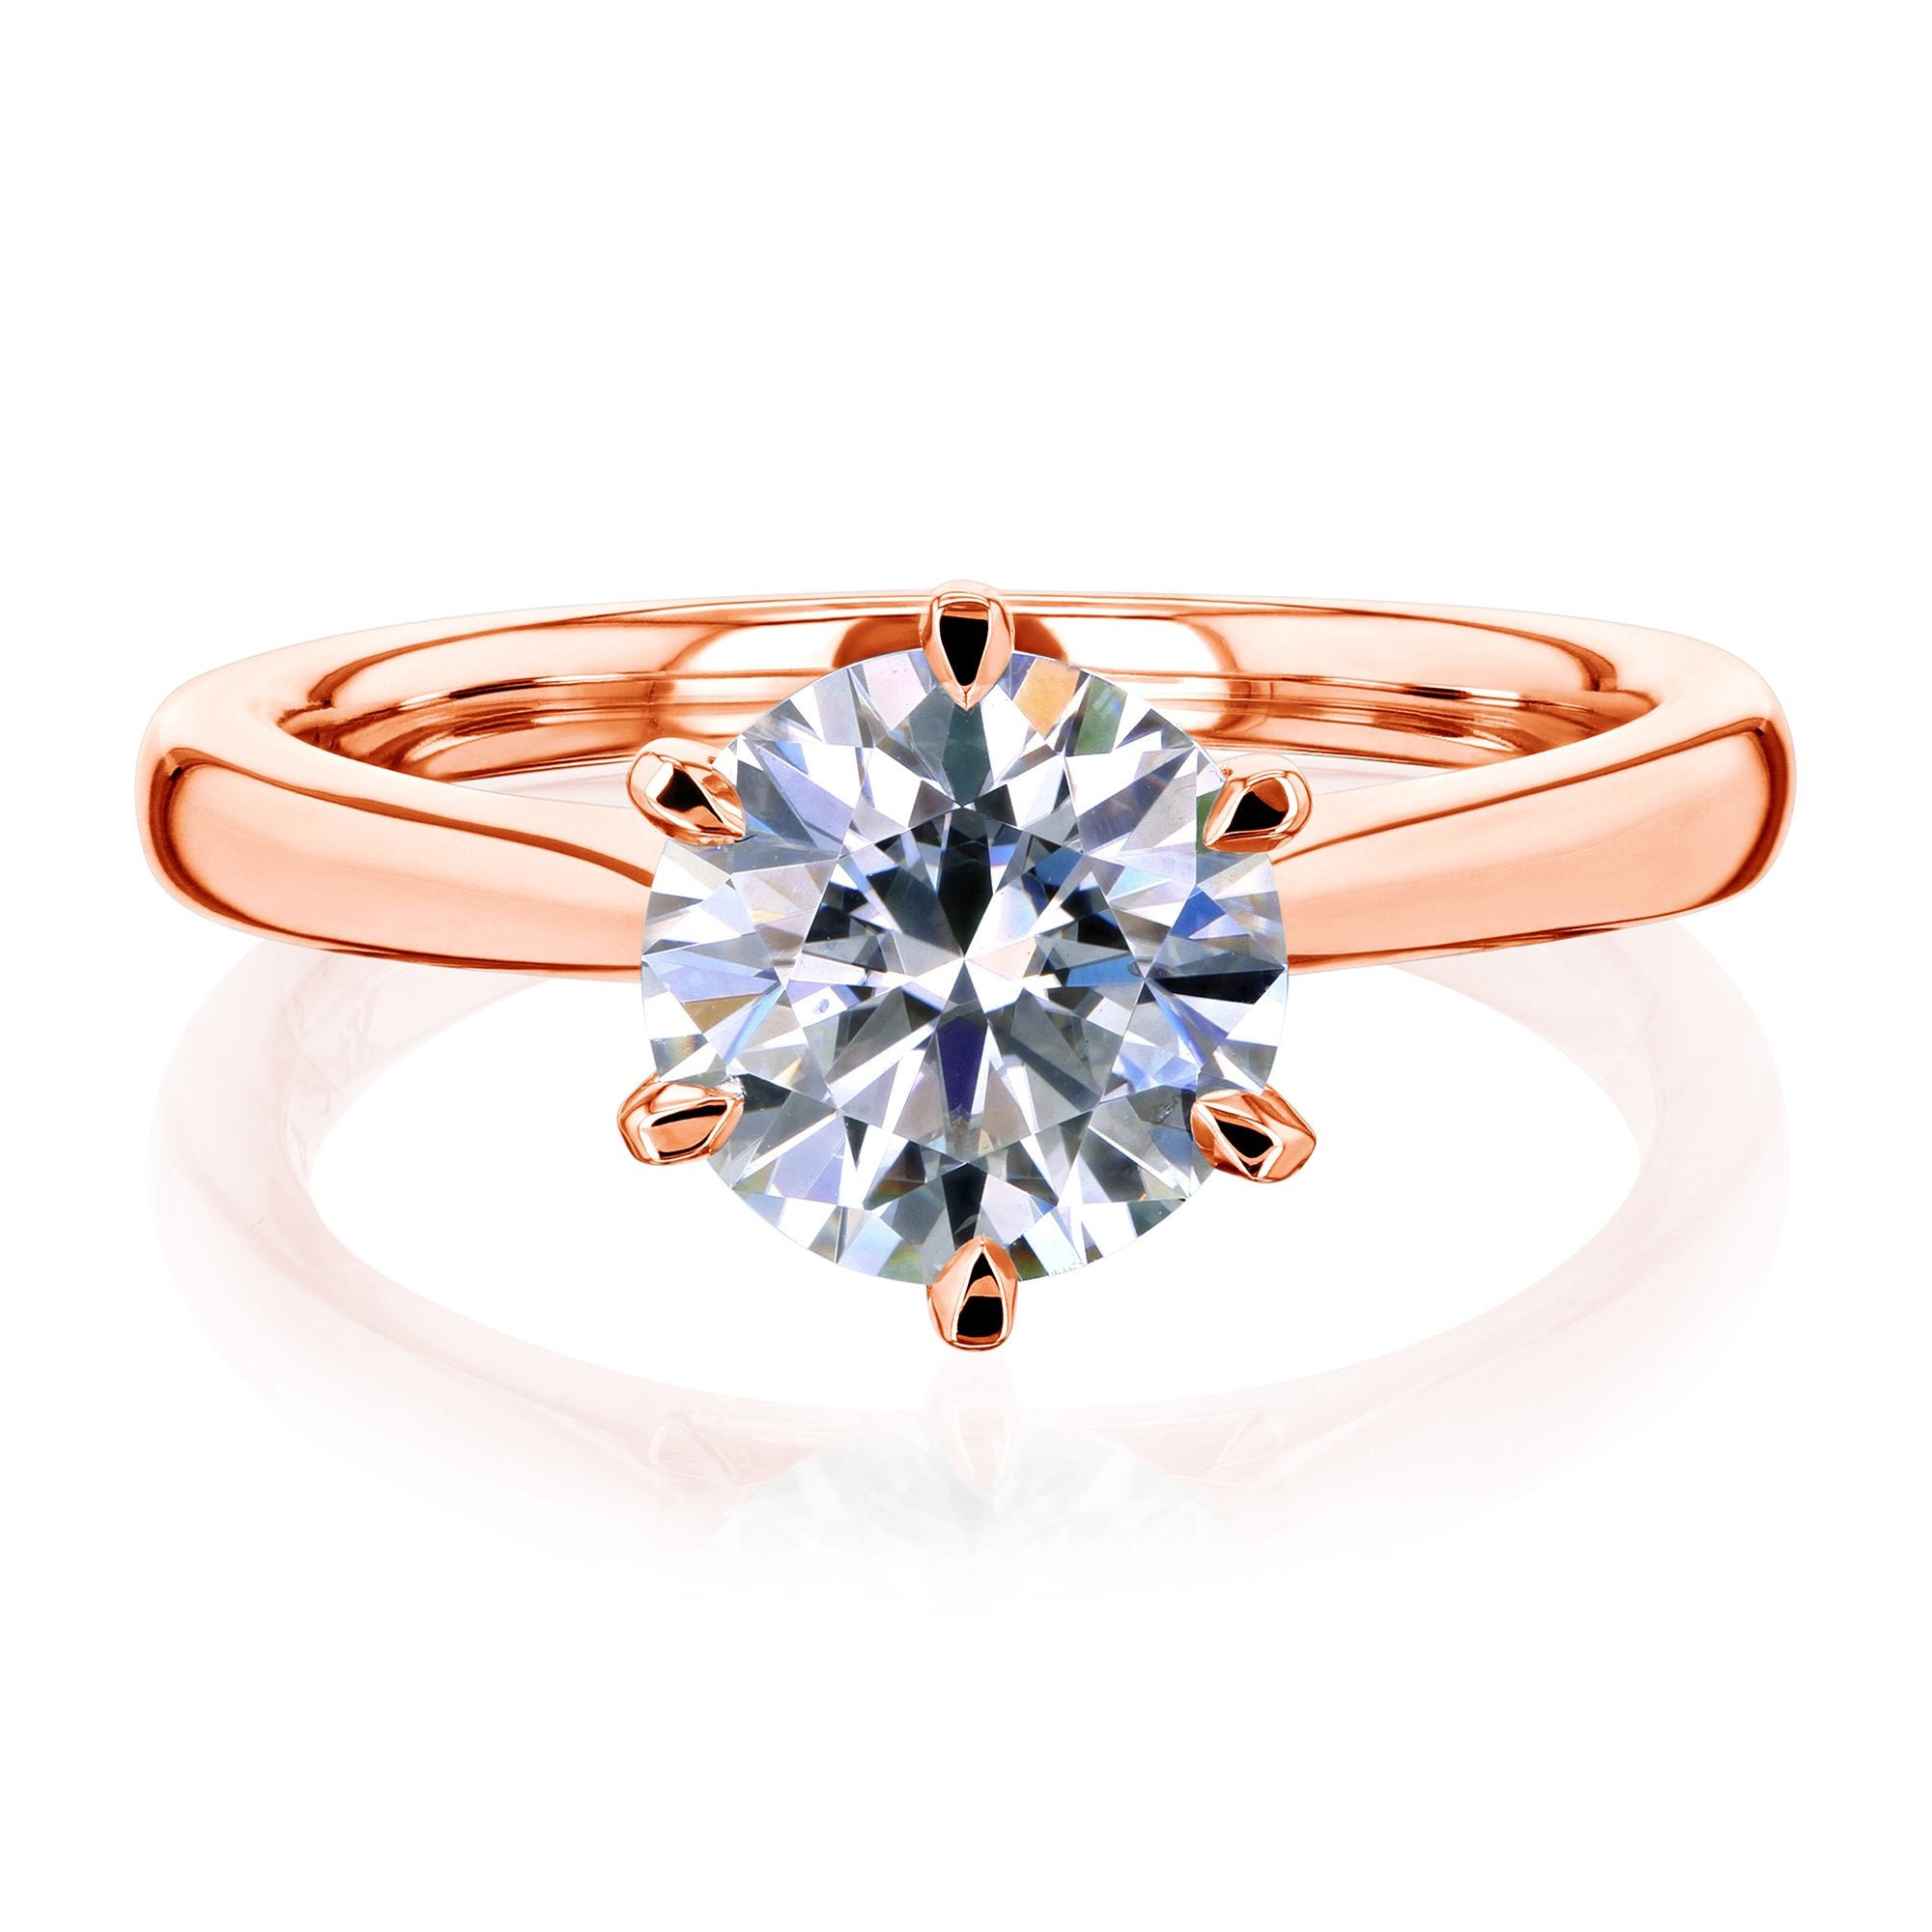 Discounts 1.5ct Round Forever One Moissanite 6-Prong Ring - rose-gold 5.0